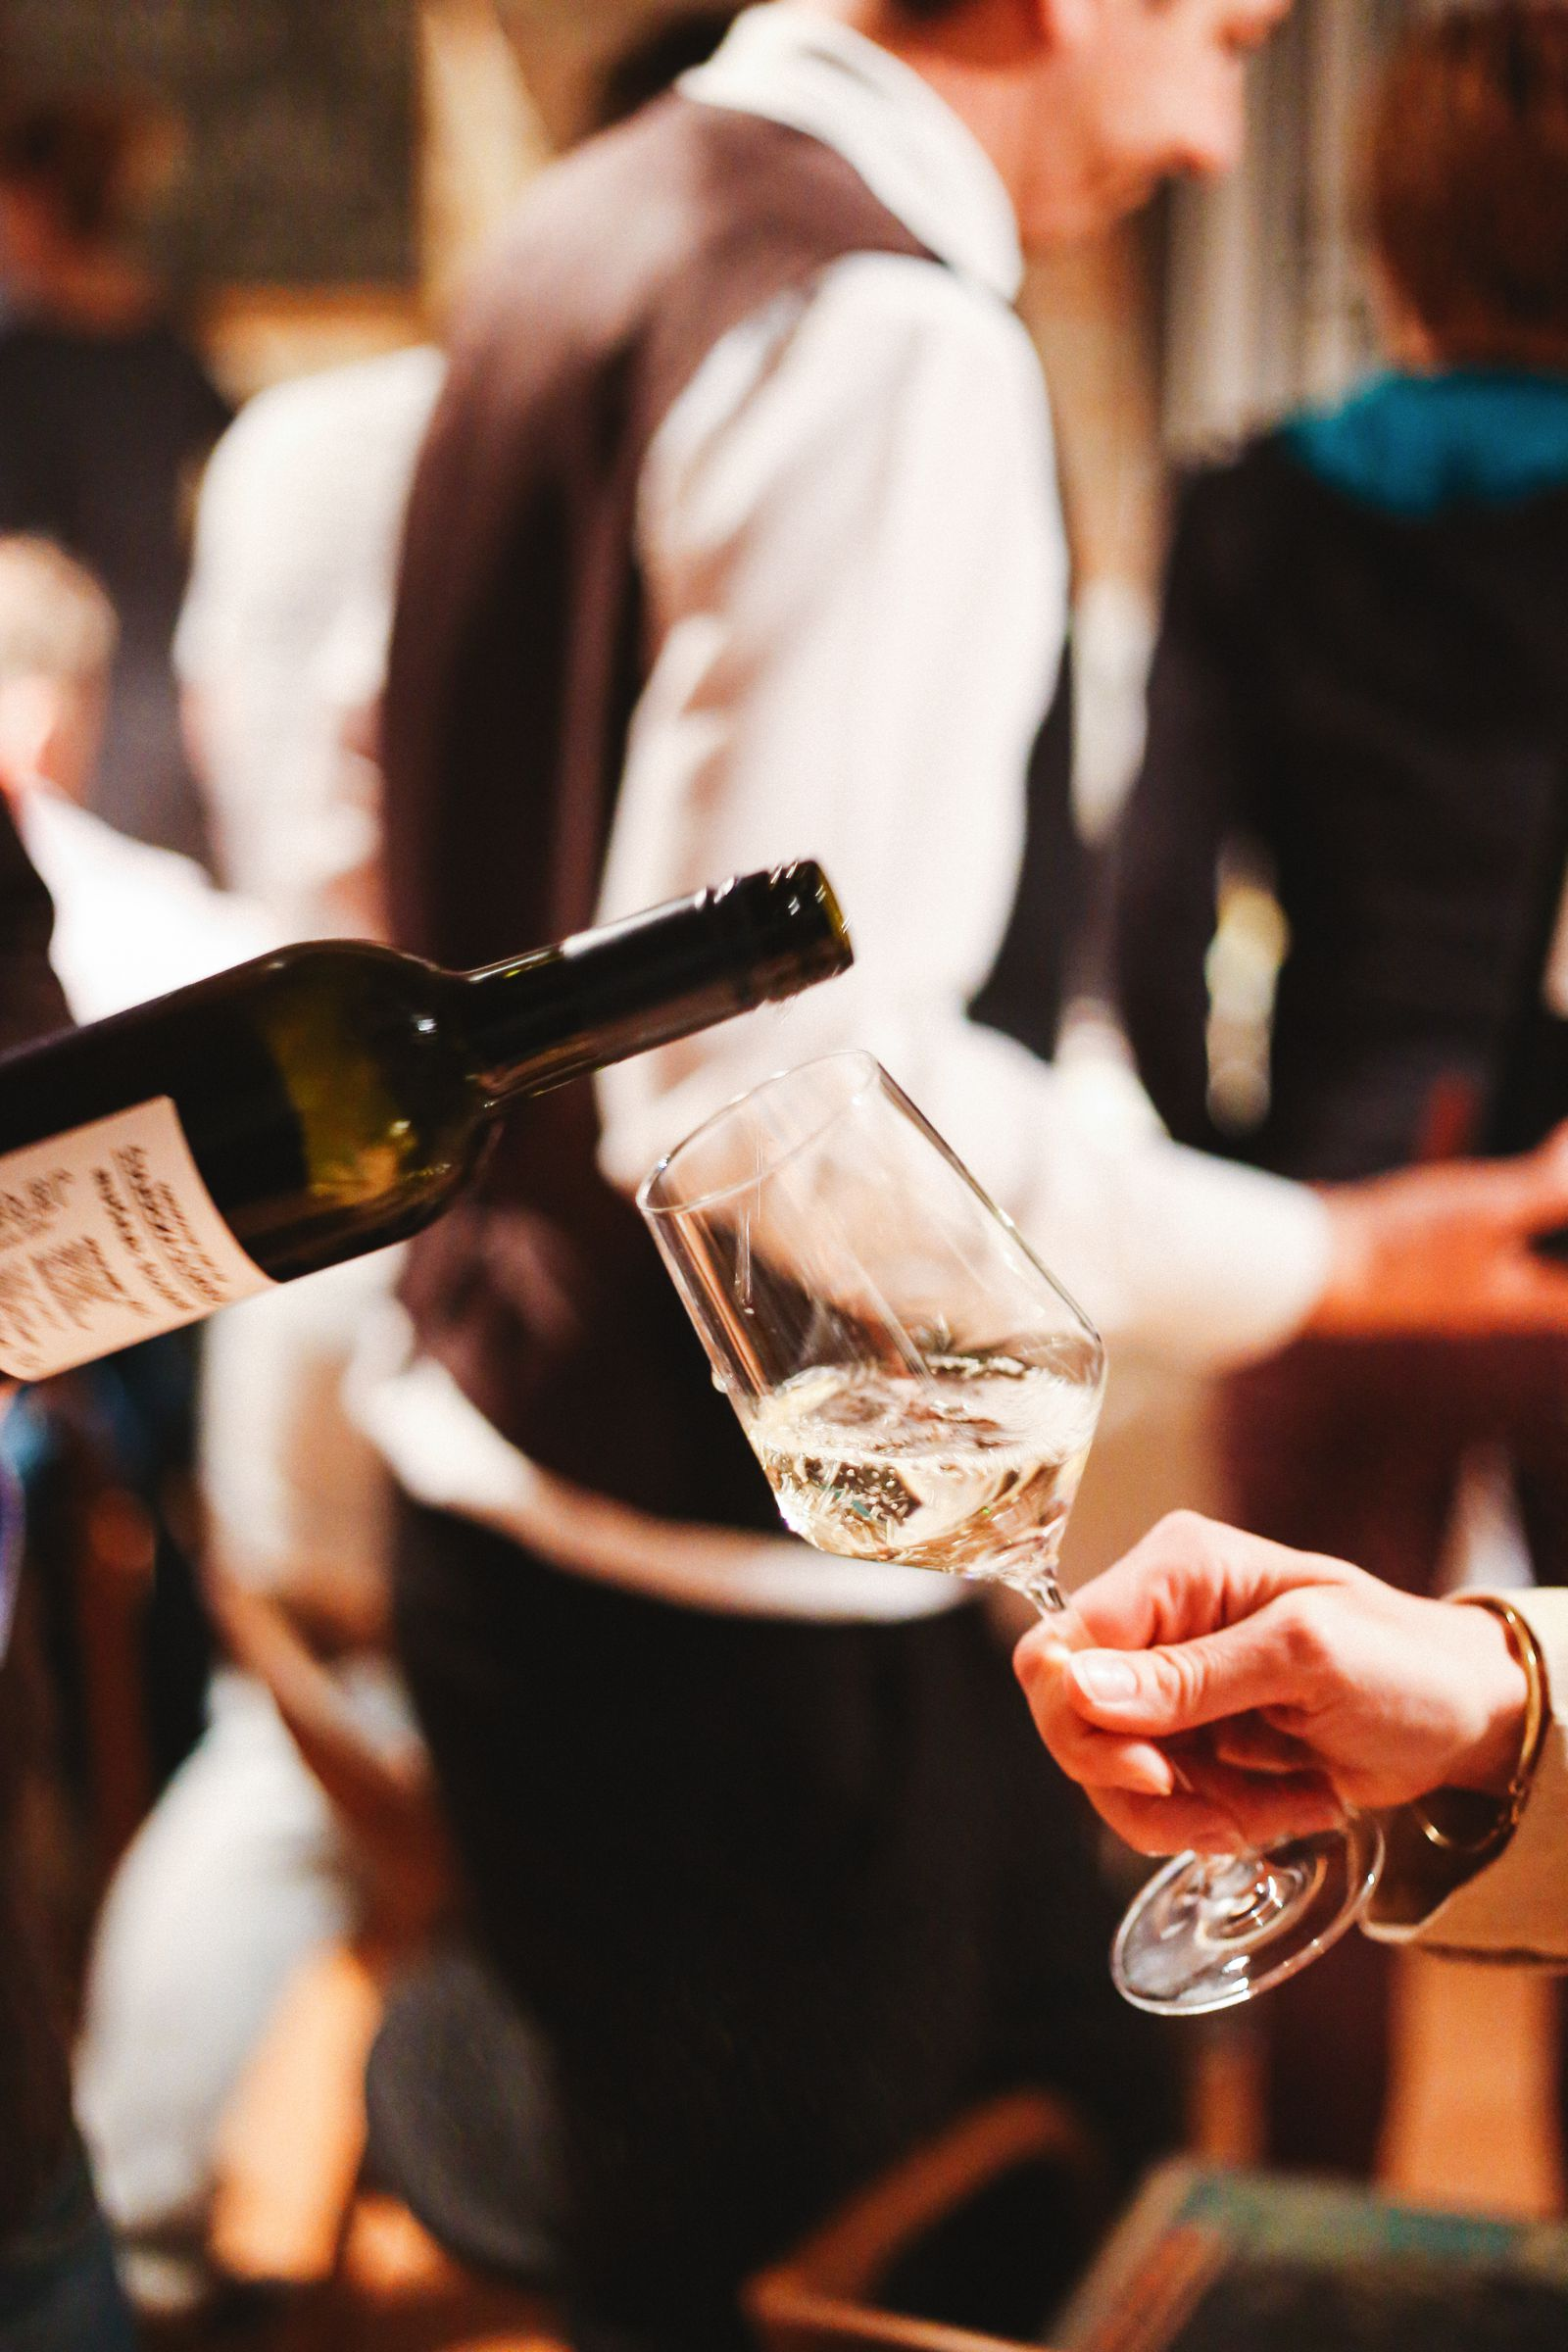 There's A Big Reason You Should Visit Slovenia This Year - The Wine! (42)